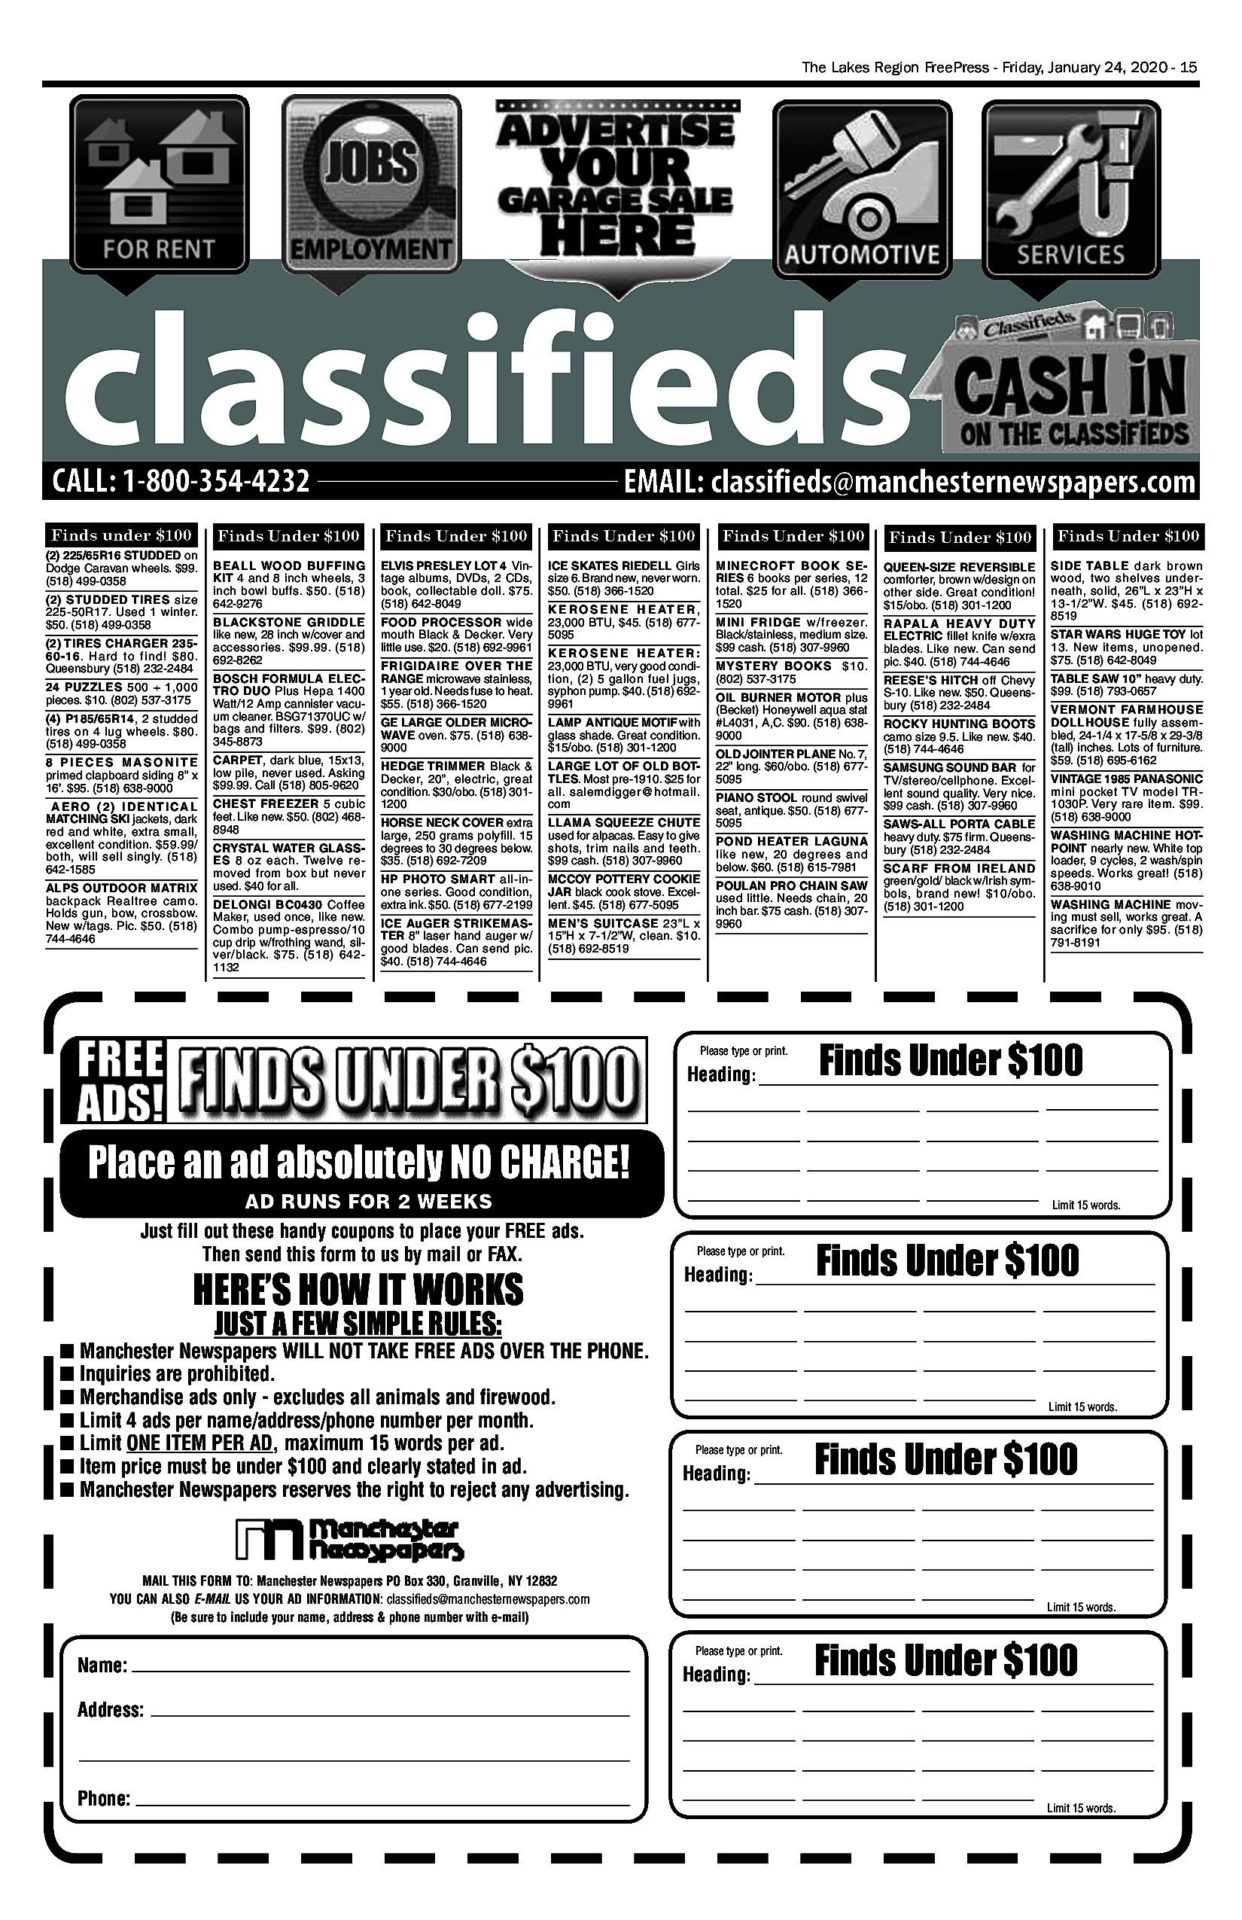 Lakes Classifieds – 01/24/20